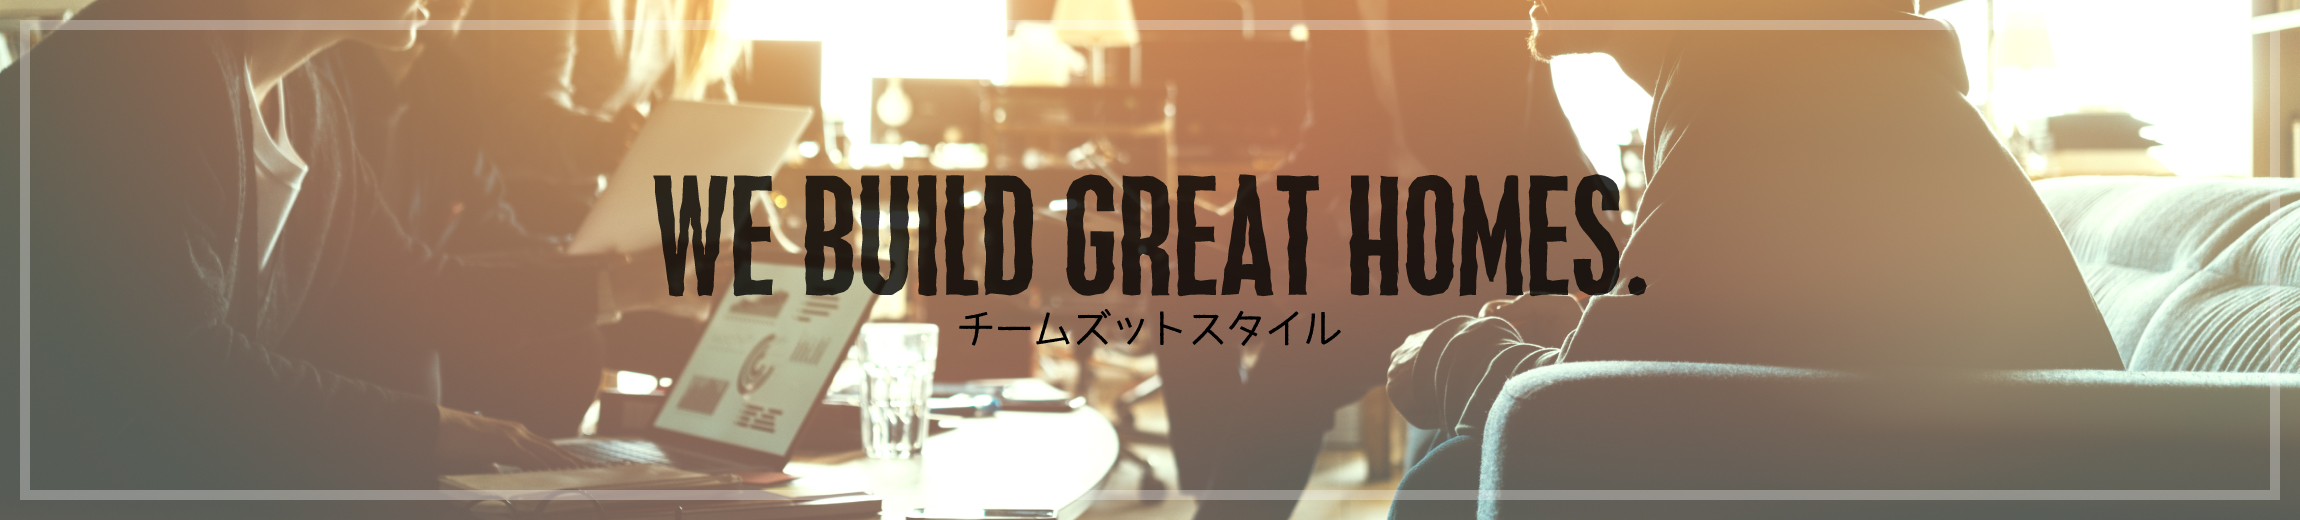 WE BUILD GREAT HOMES. チームズットスタイル